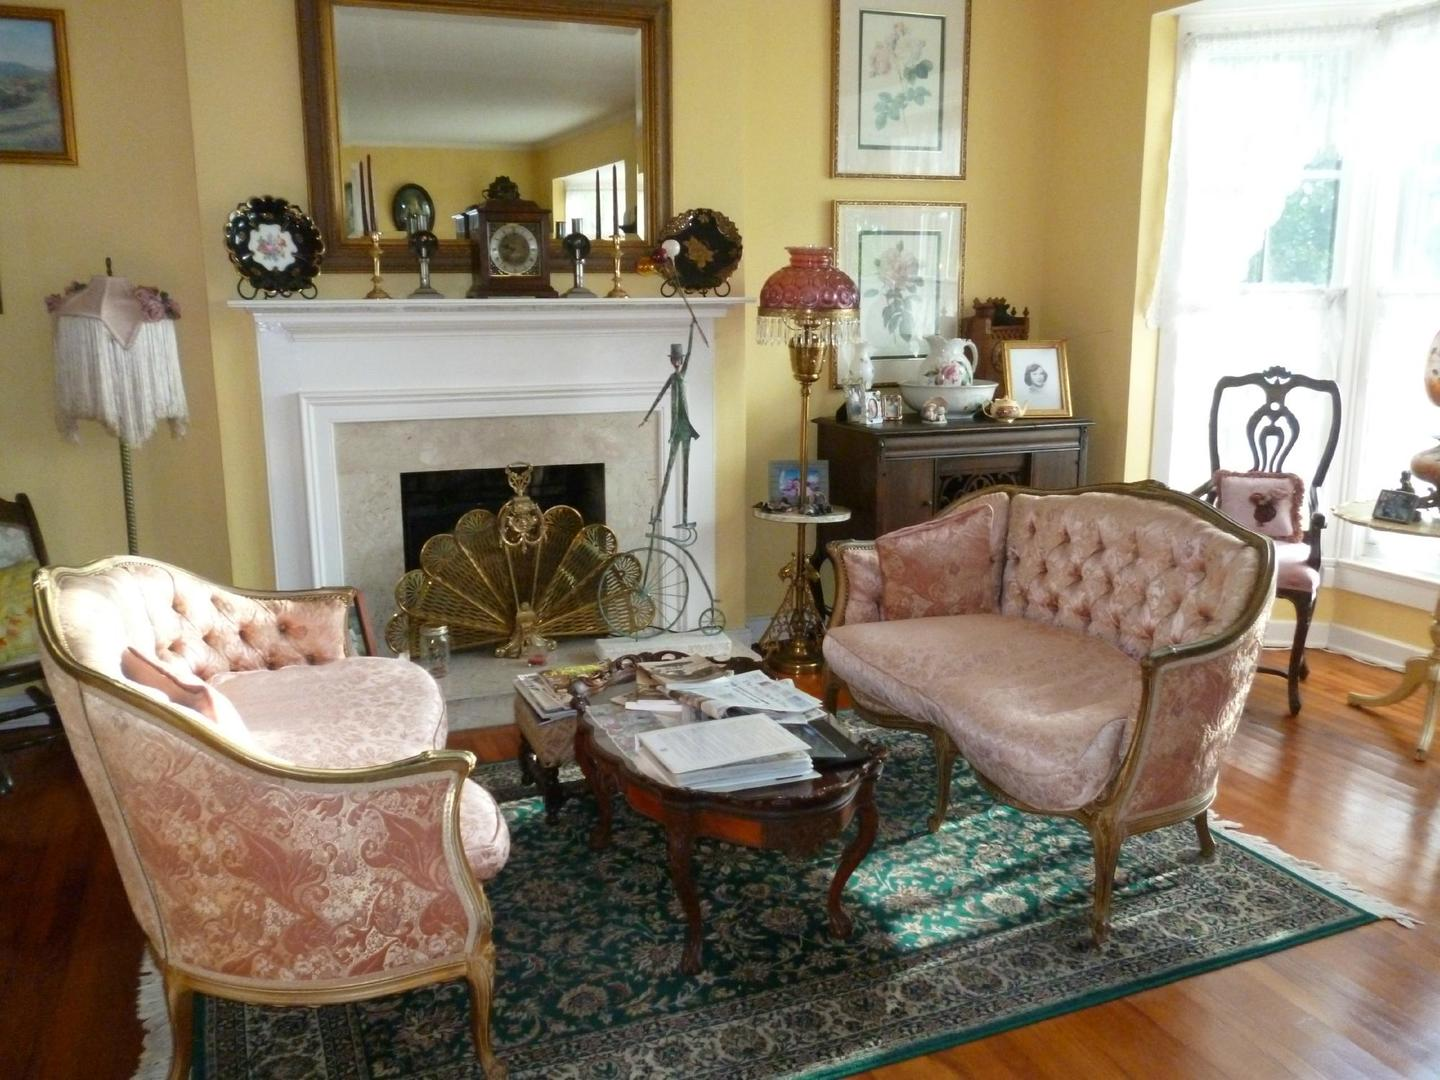 A living room filled with furniture and a fire place at Sabal Palm House Bed and Breakfast Inn.